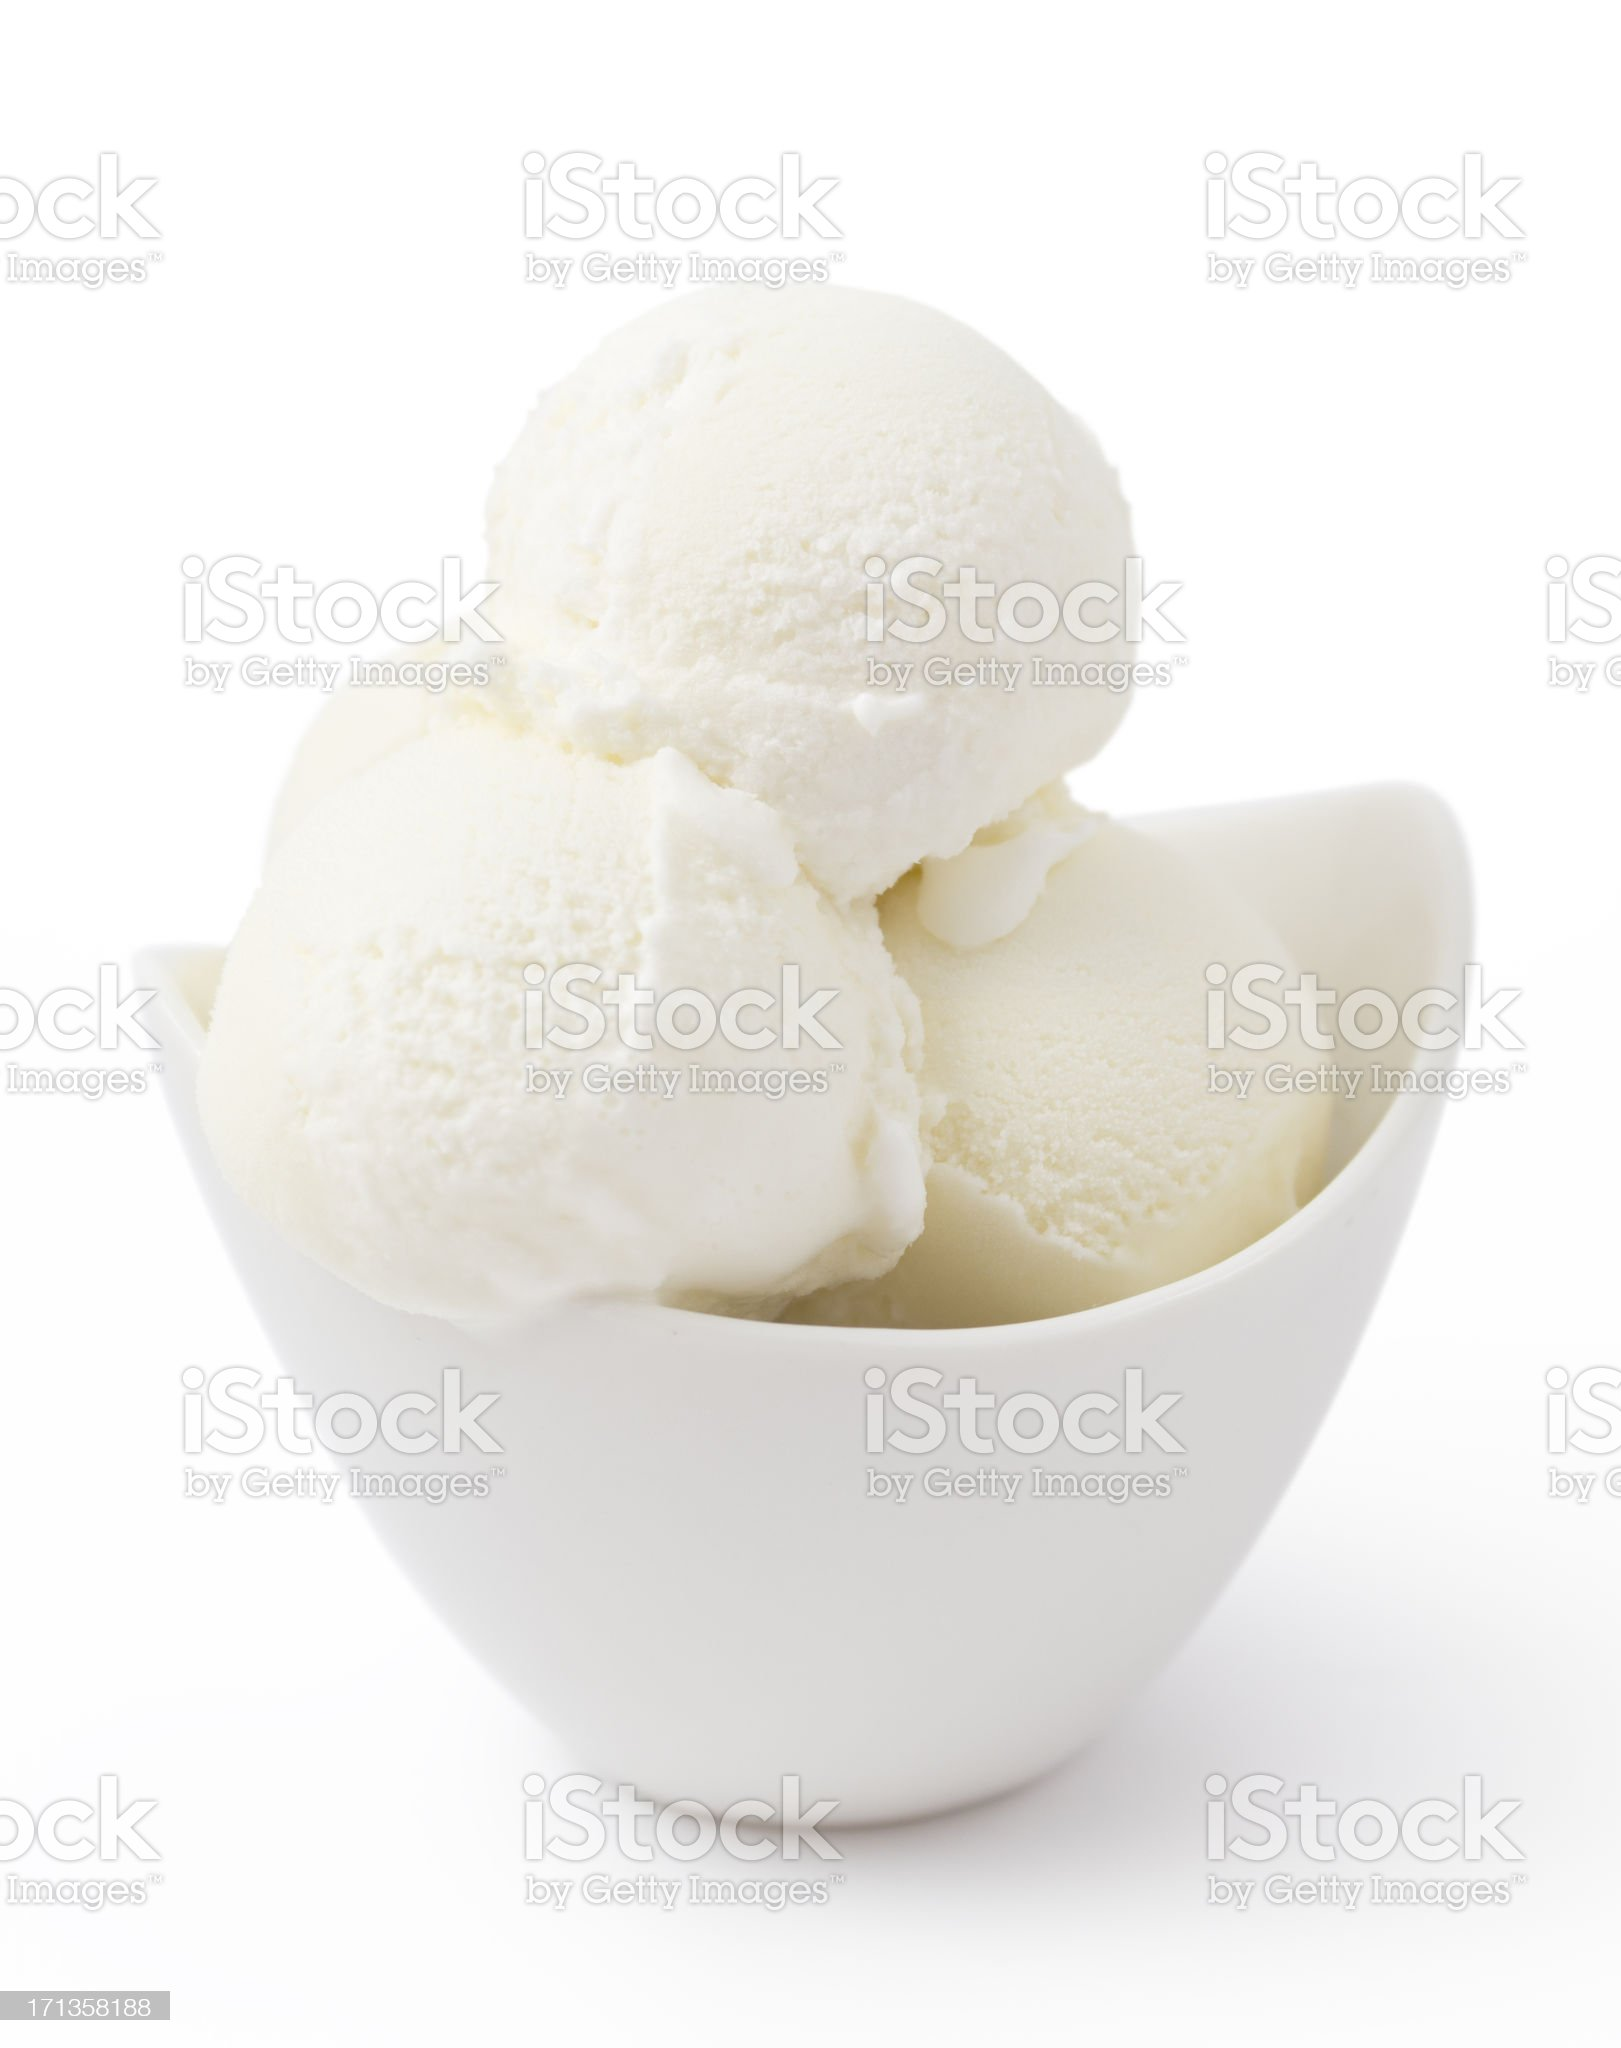 Ice Cream - Panna royalty-free stock photo